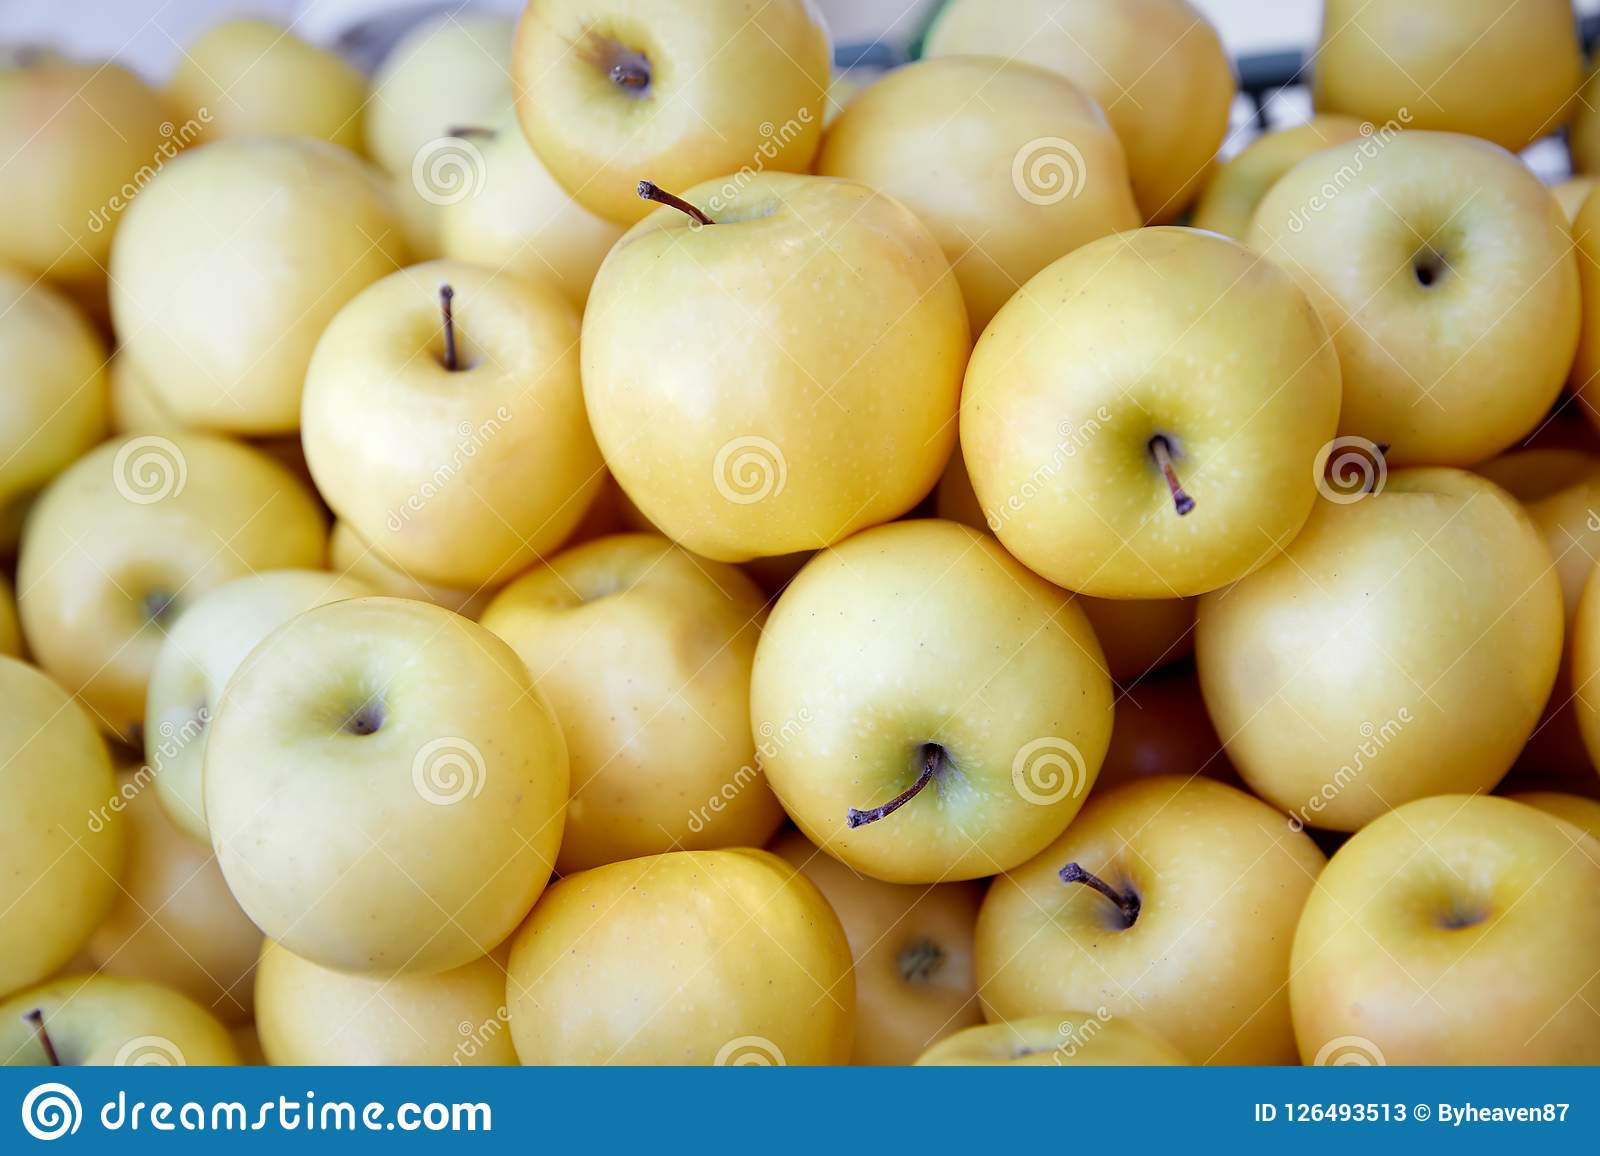 iol apples asian supplier - 735×490